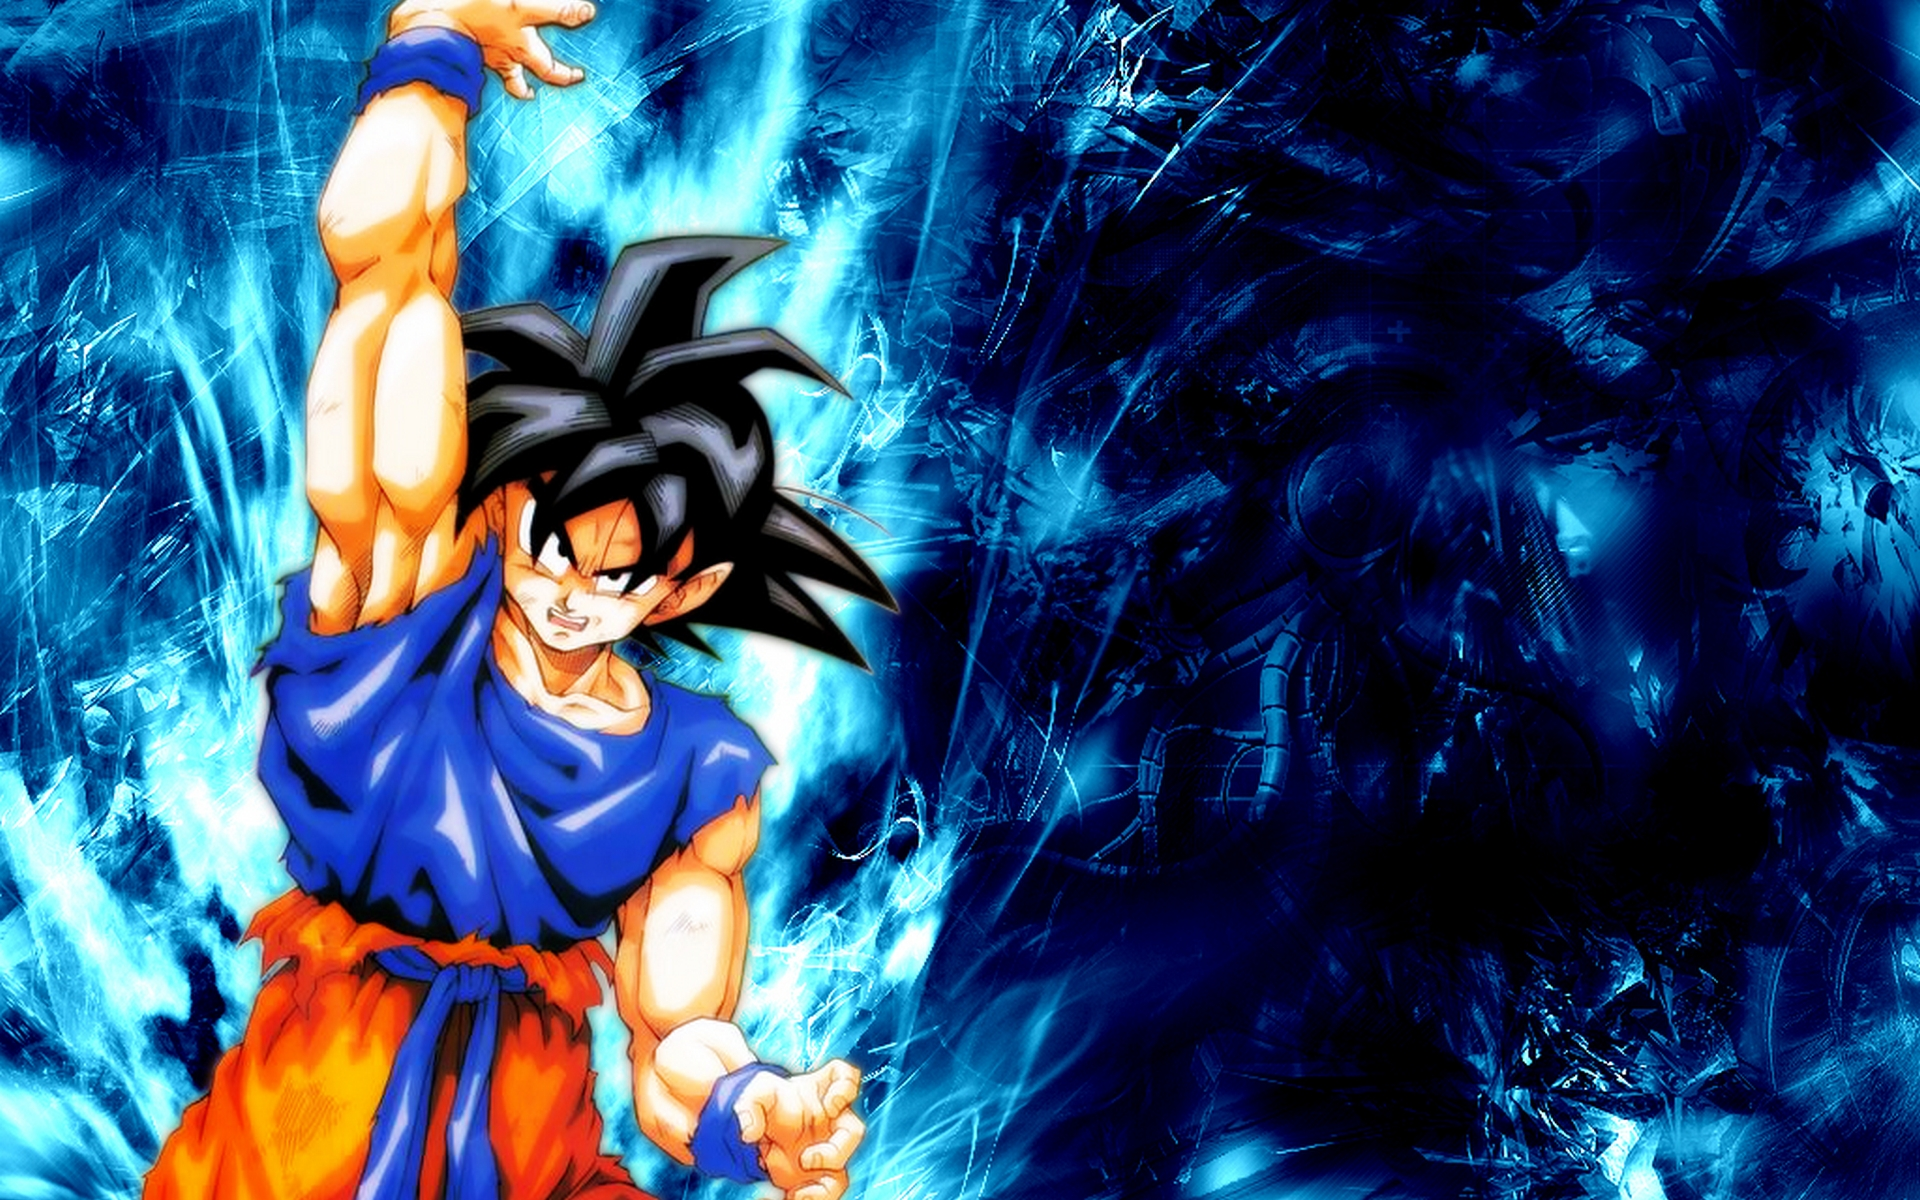 Goku Super Saiyan 4 Wallpaper IPhone 5 Wallpaper WallpaperLepi 1920x1200